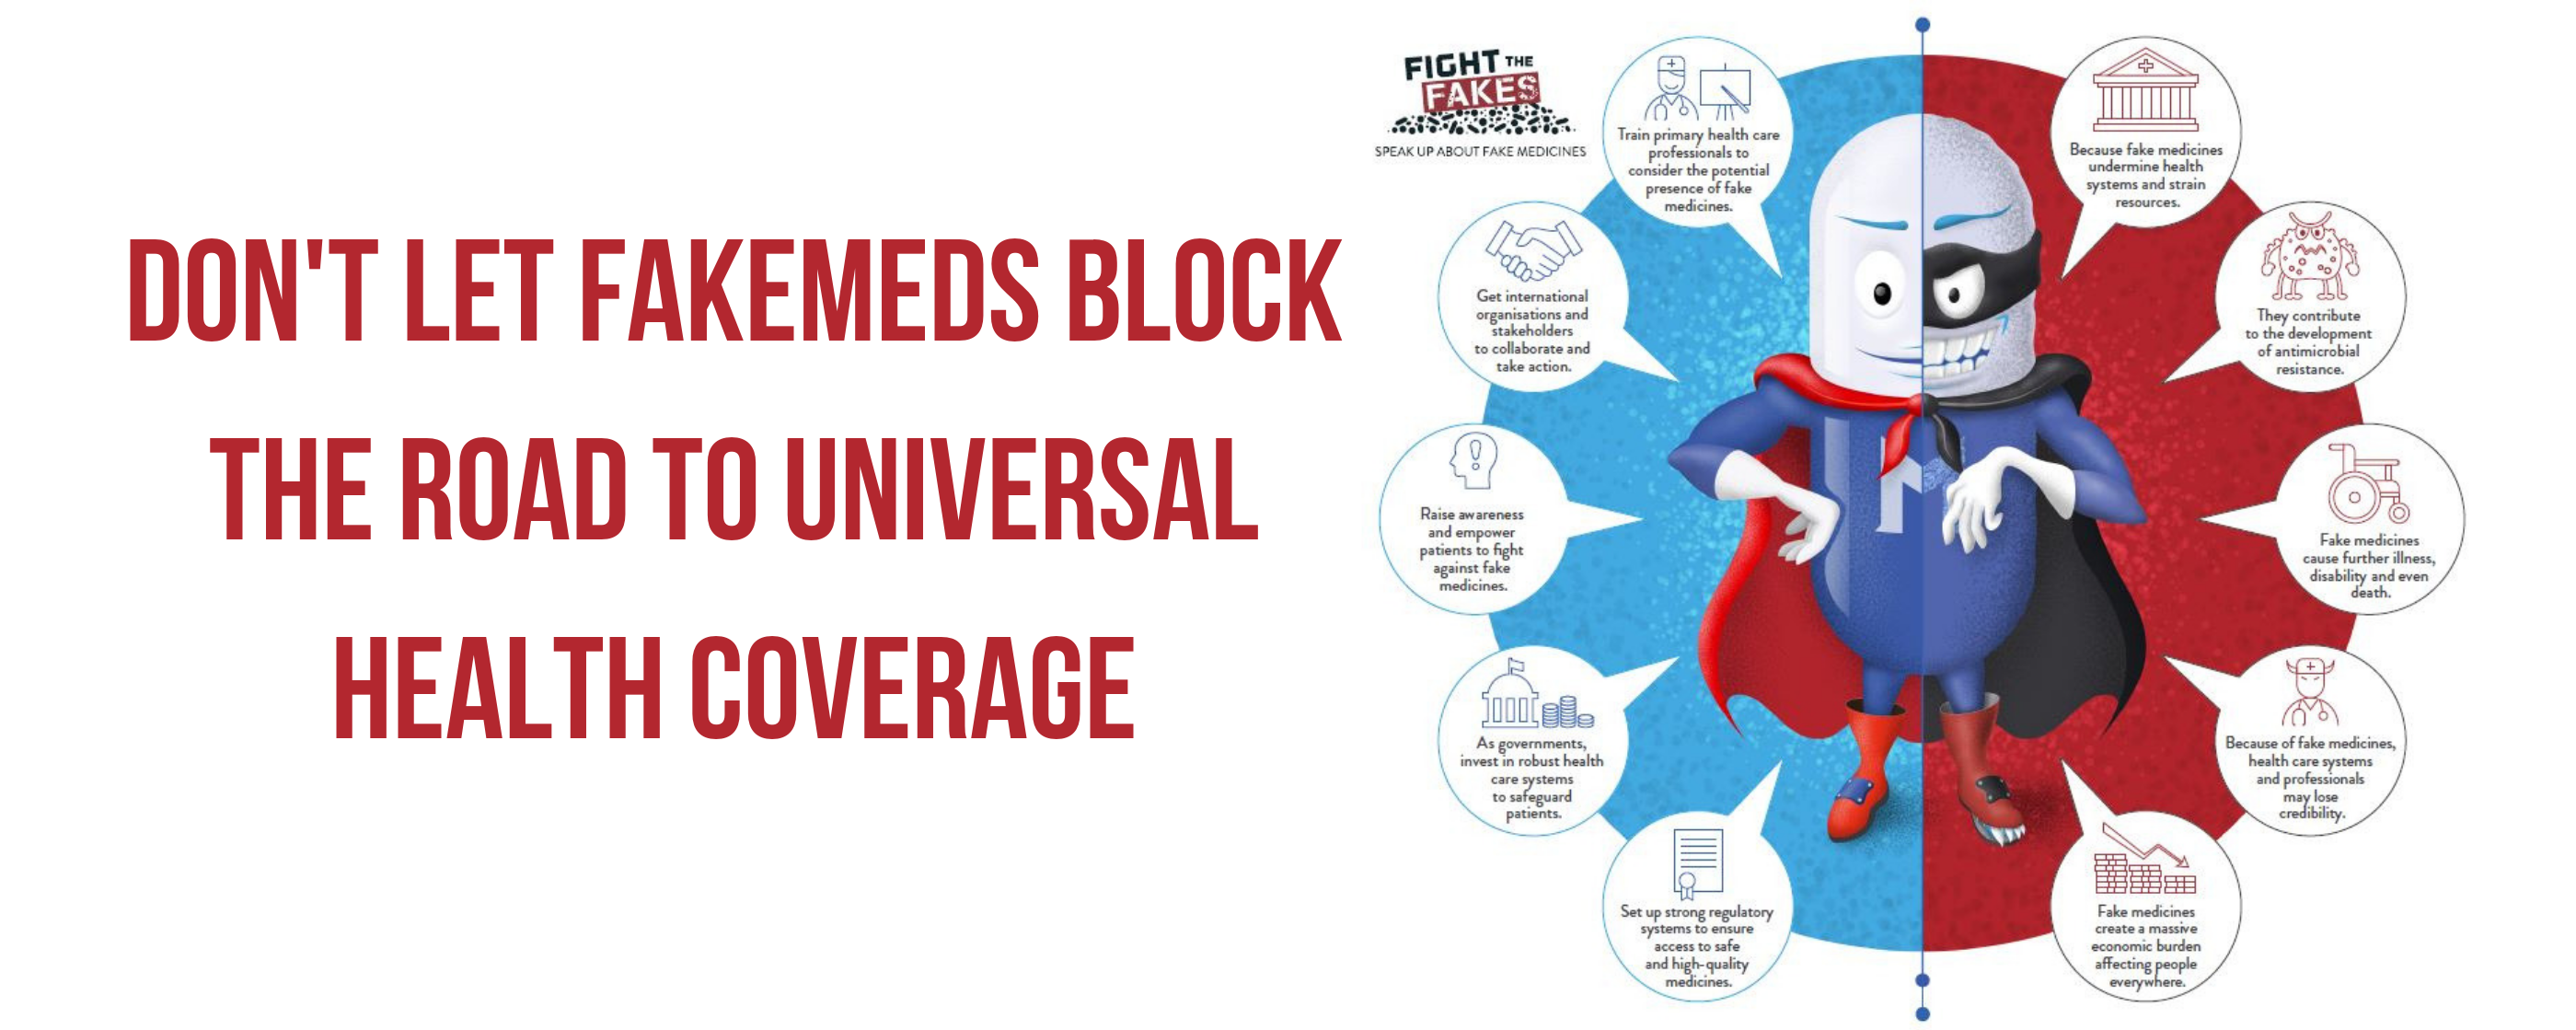 Don't let fakemeds block the road to universal health coverage!